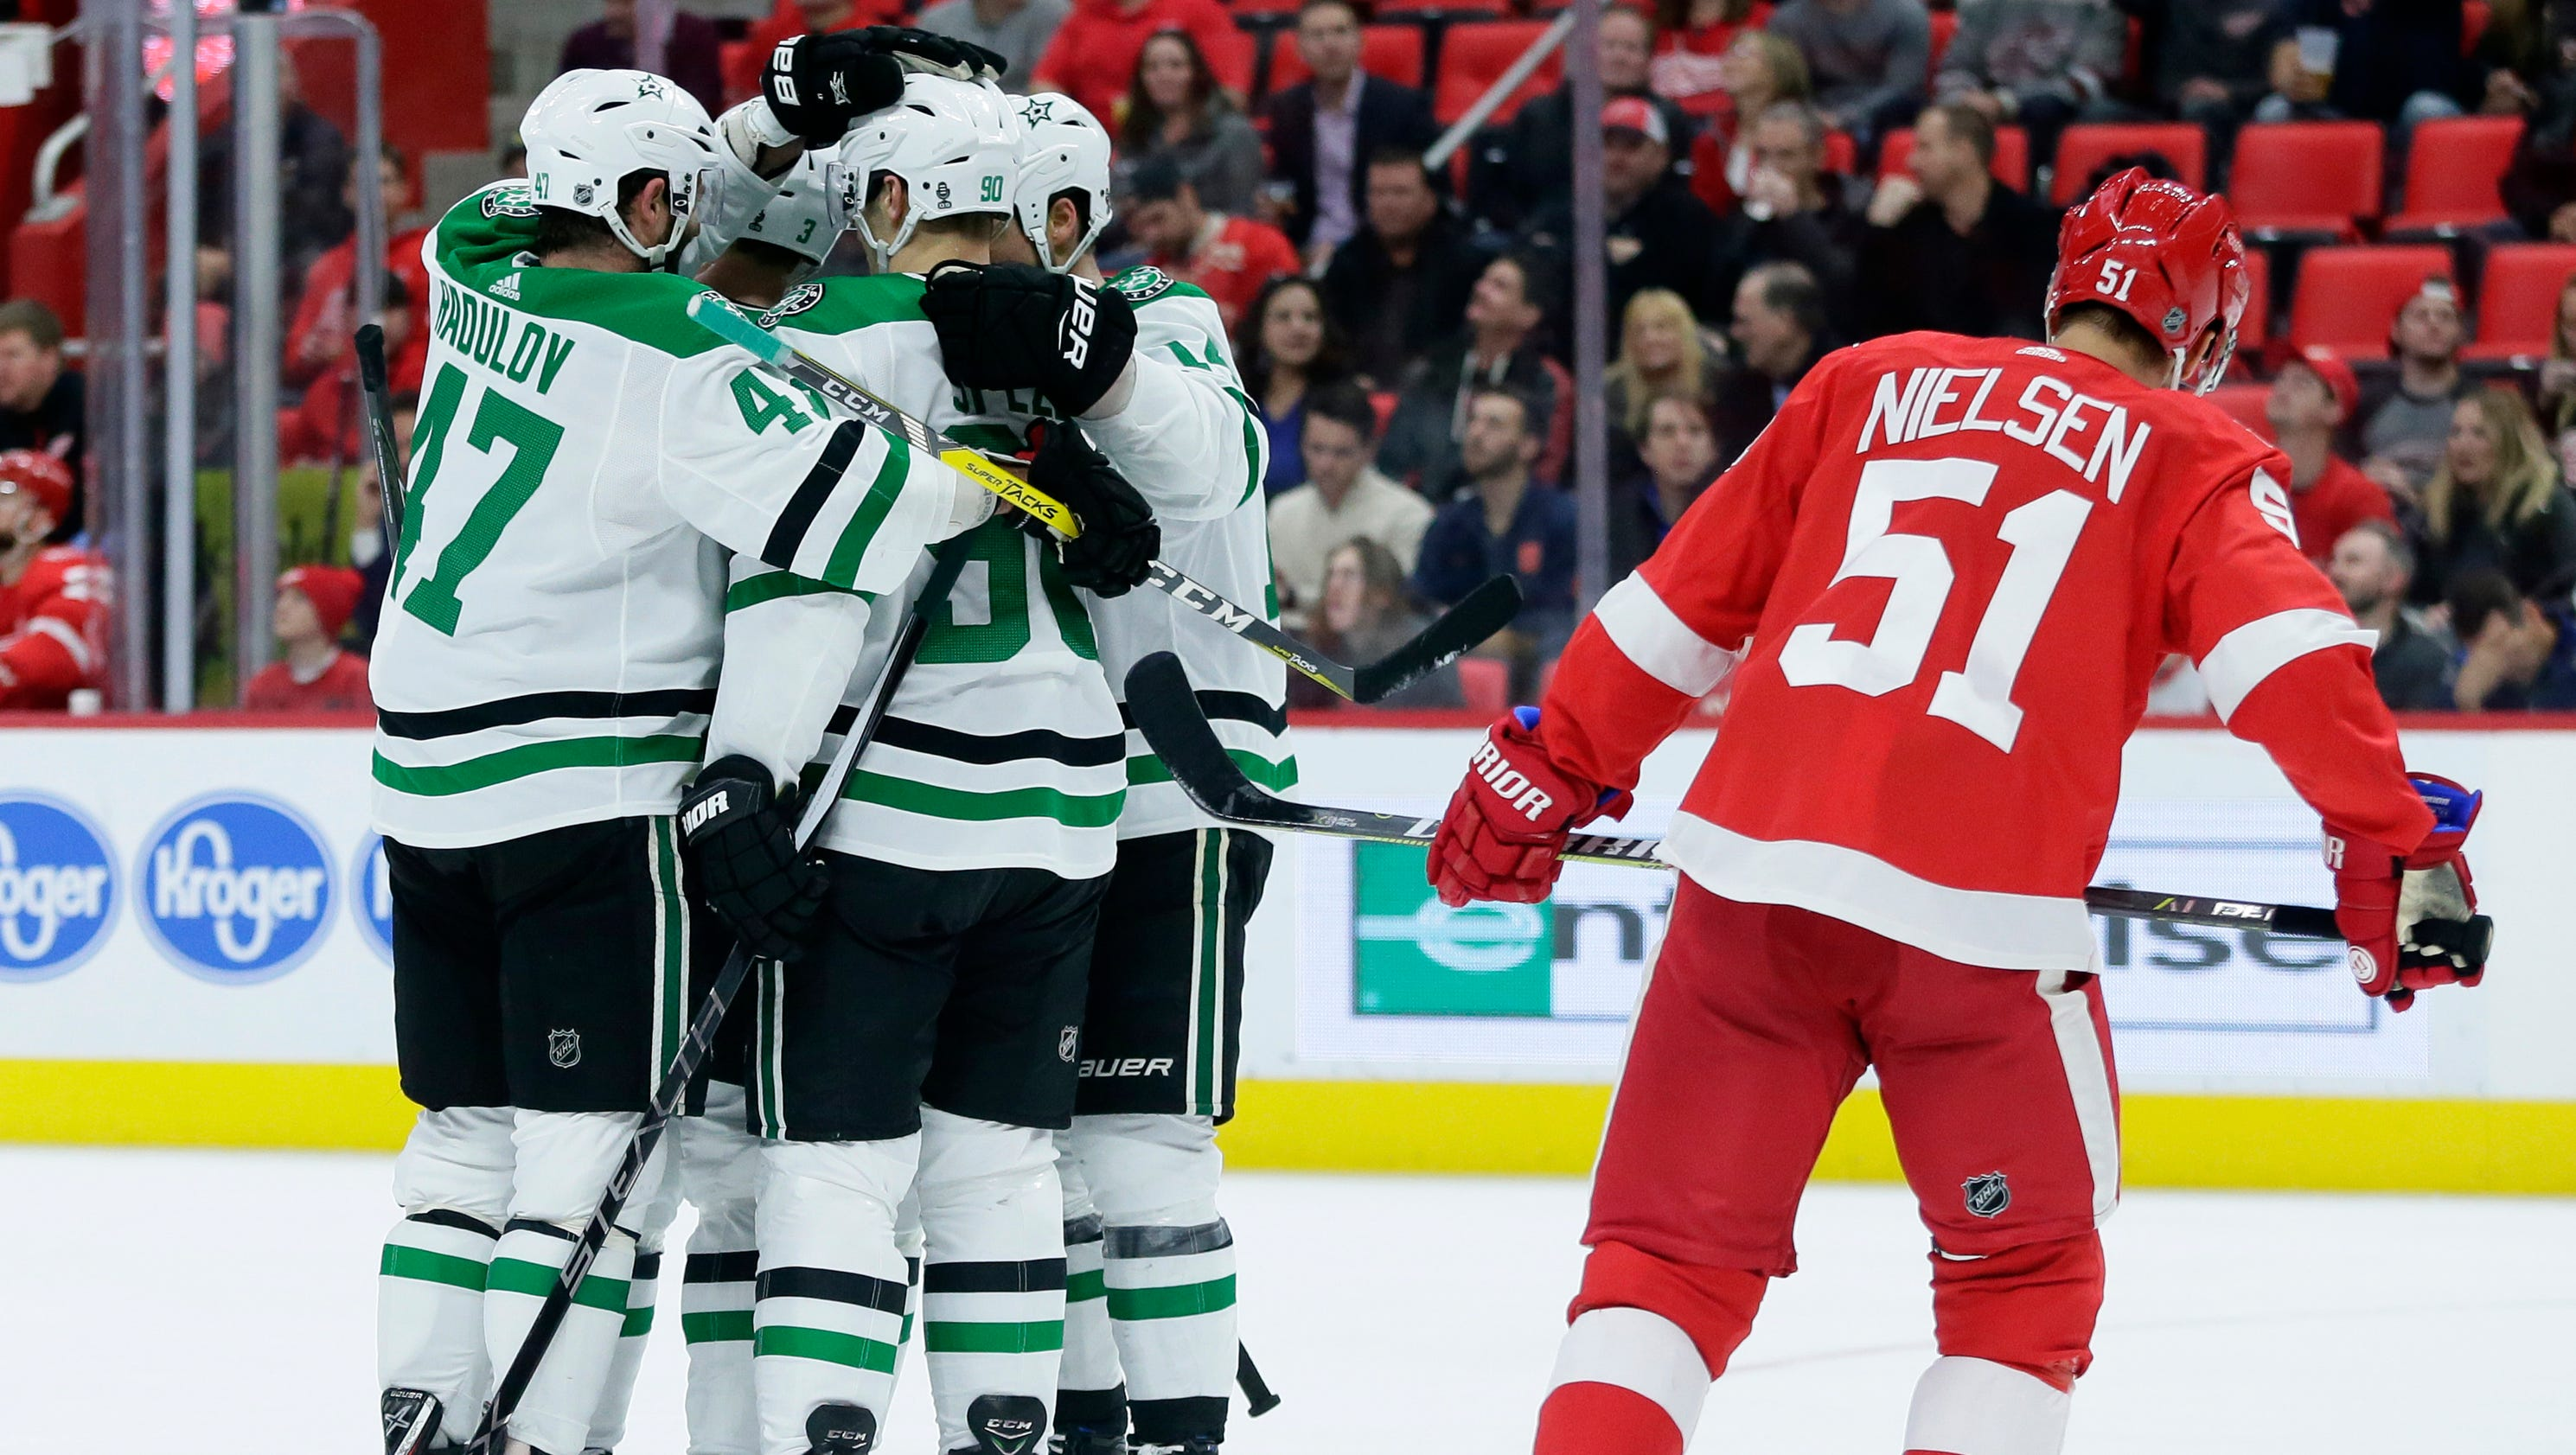 636517394973254691-ap-stars-red-wings-hockey